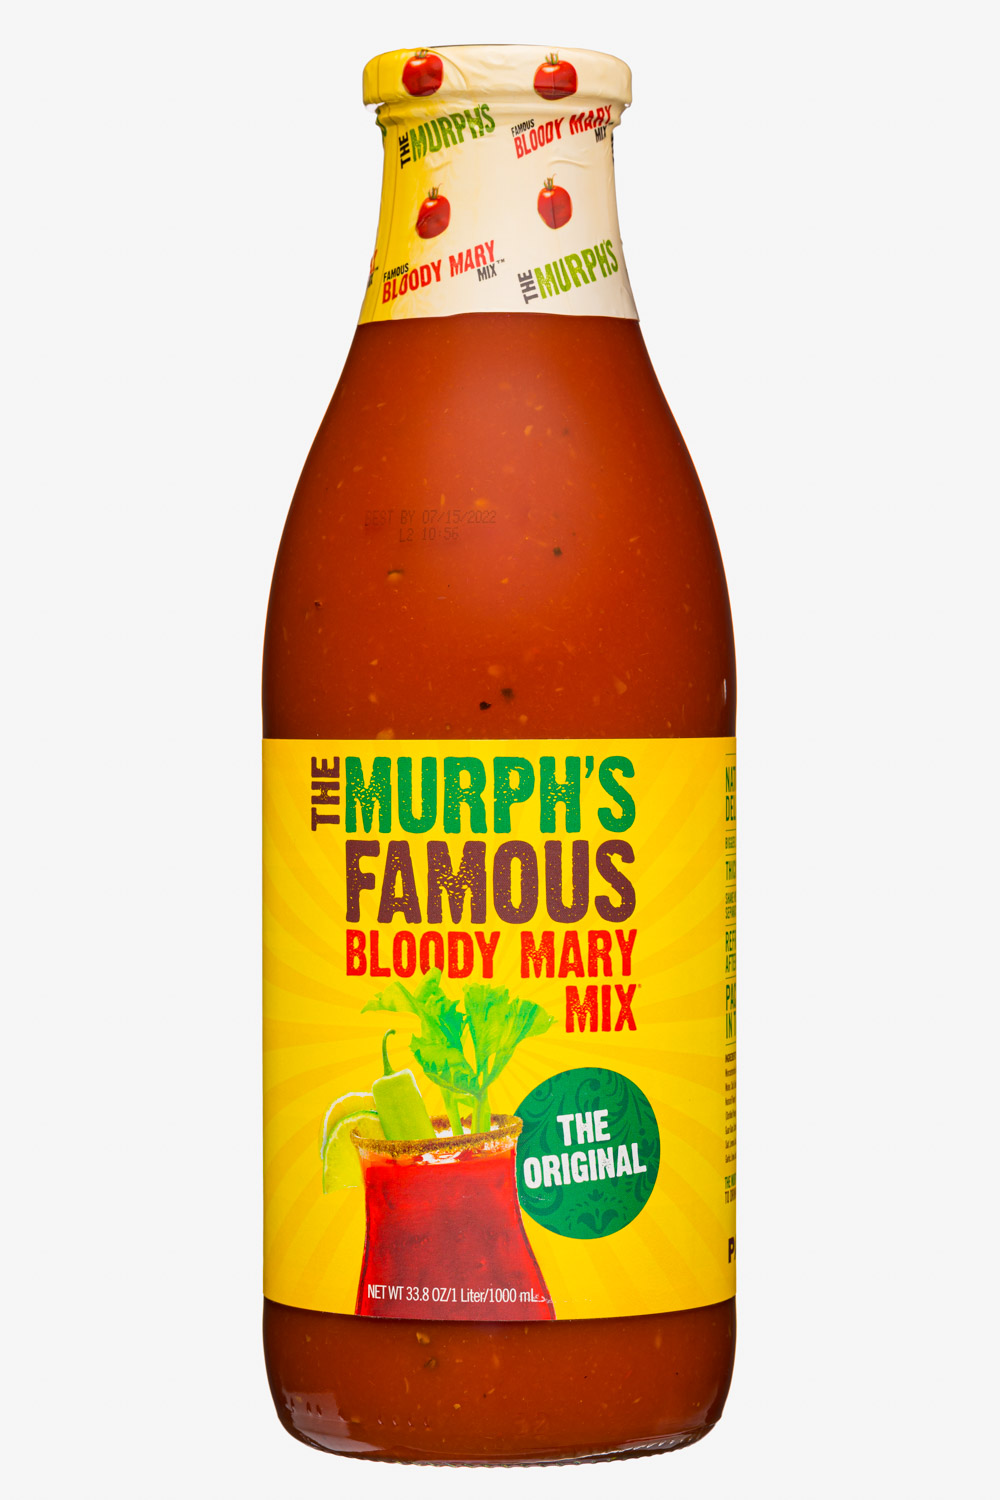 The Murph's Famous Bloody Mary Mix: TheMurphsFamous-34oz-2020-BloodyMaryMix-TheOriginal-Front